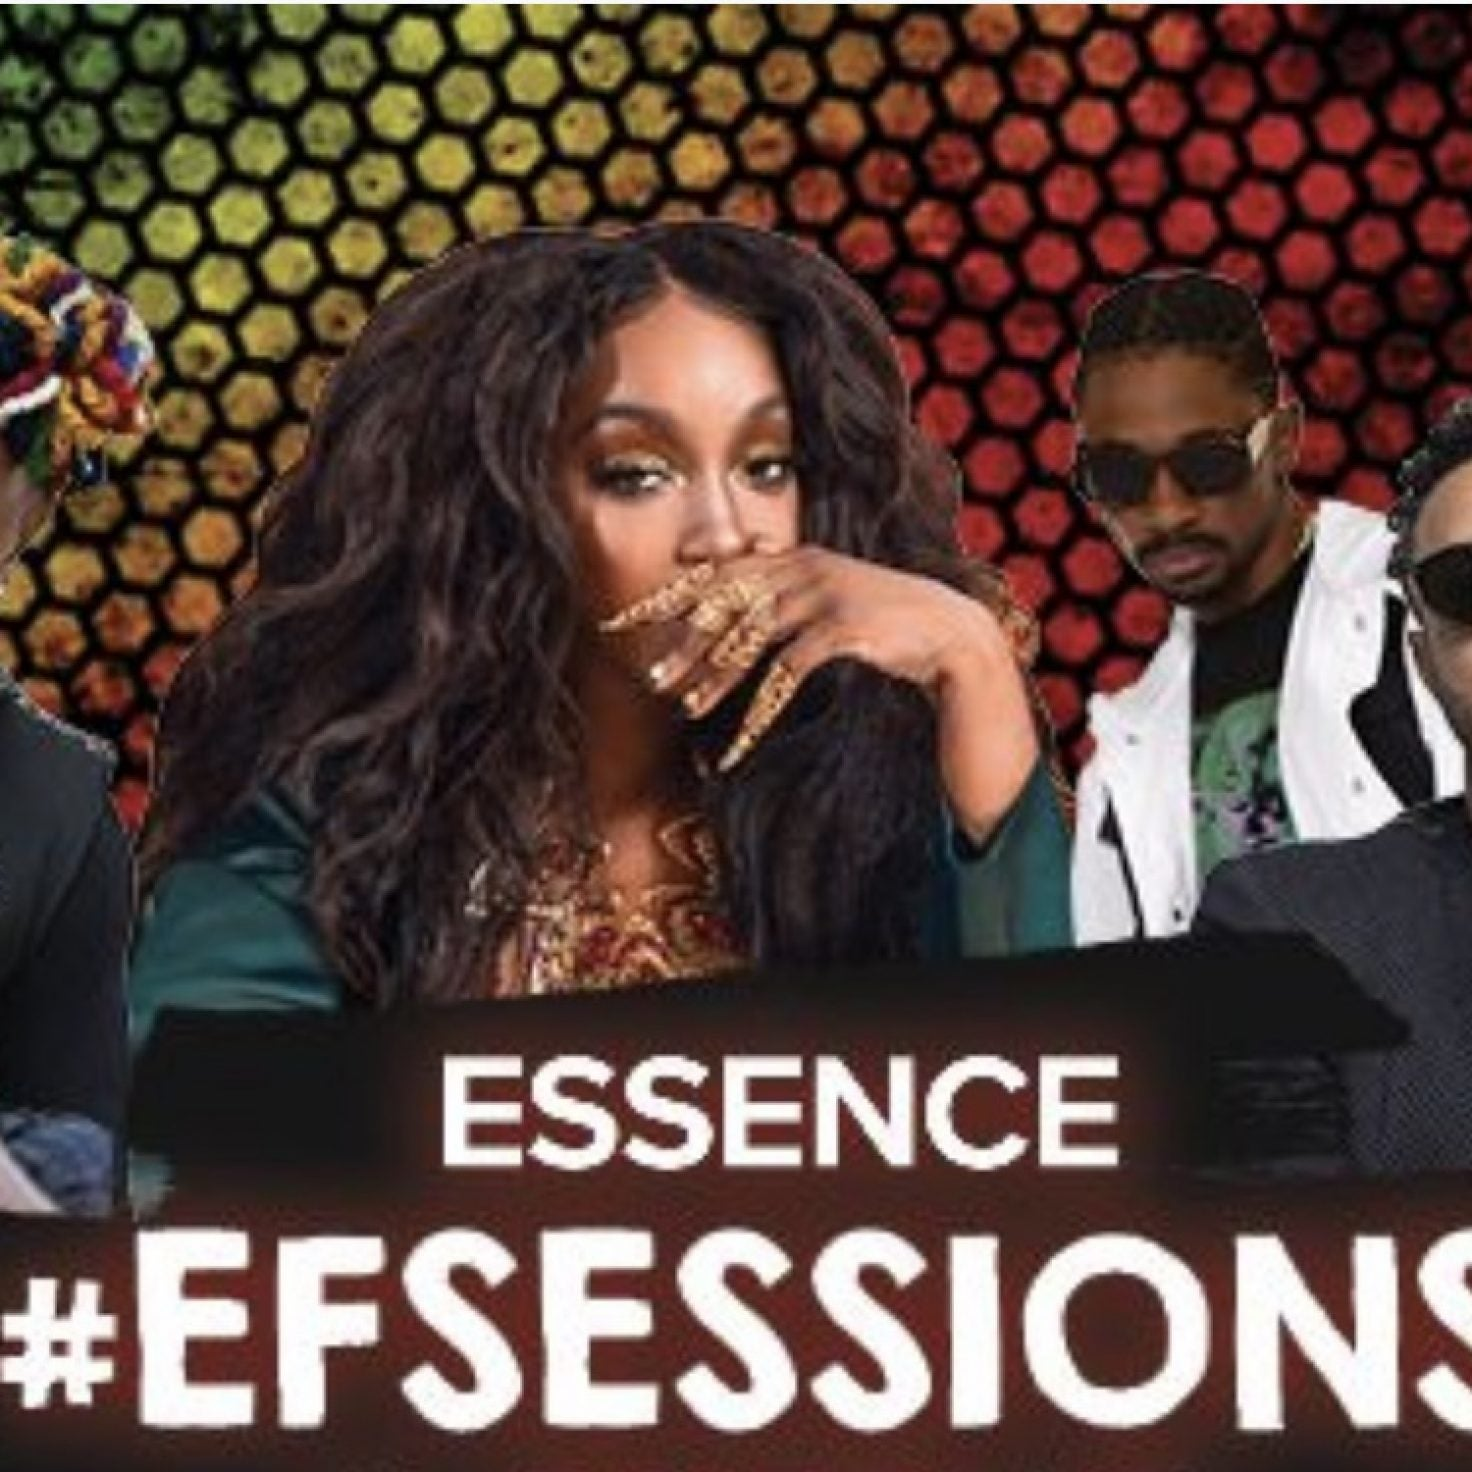 #EFSessions: Join Estelle, Elephant Man, Shaggy, Chronixx & More For The Ultimate Labor Day Weekend Kickoff